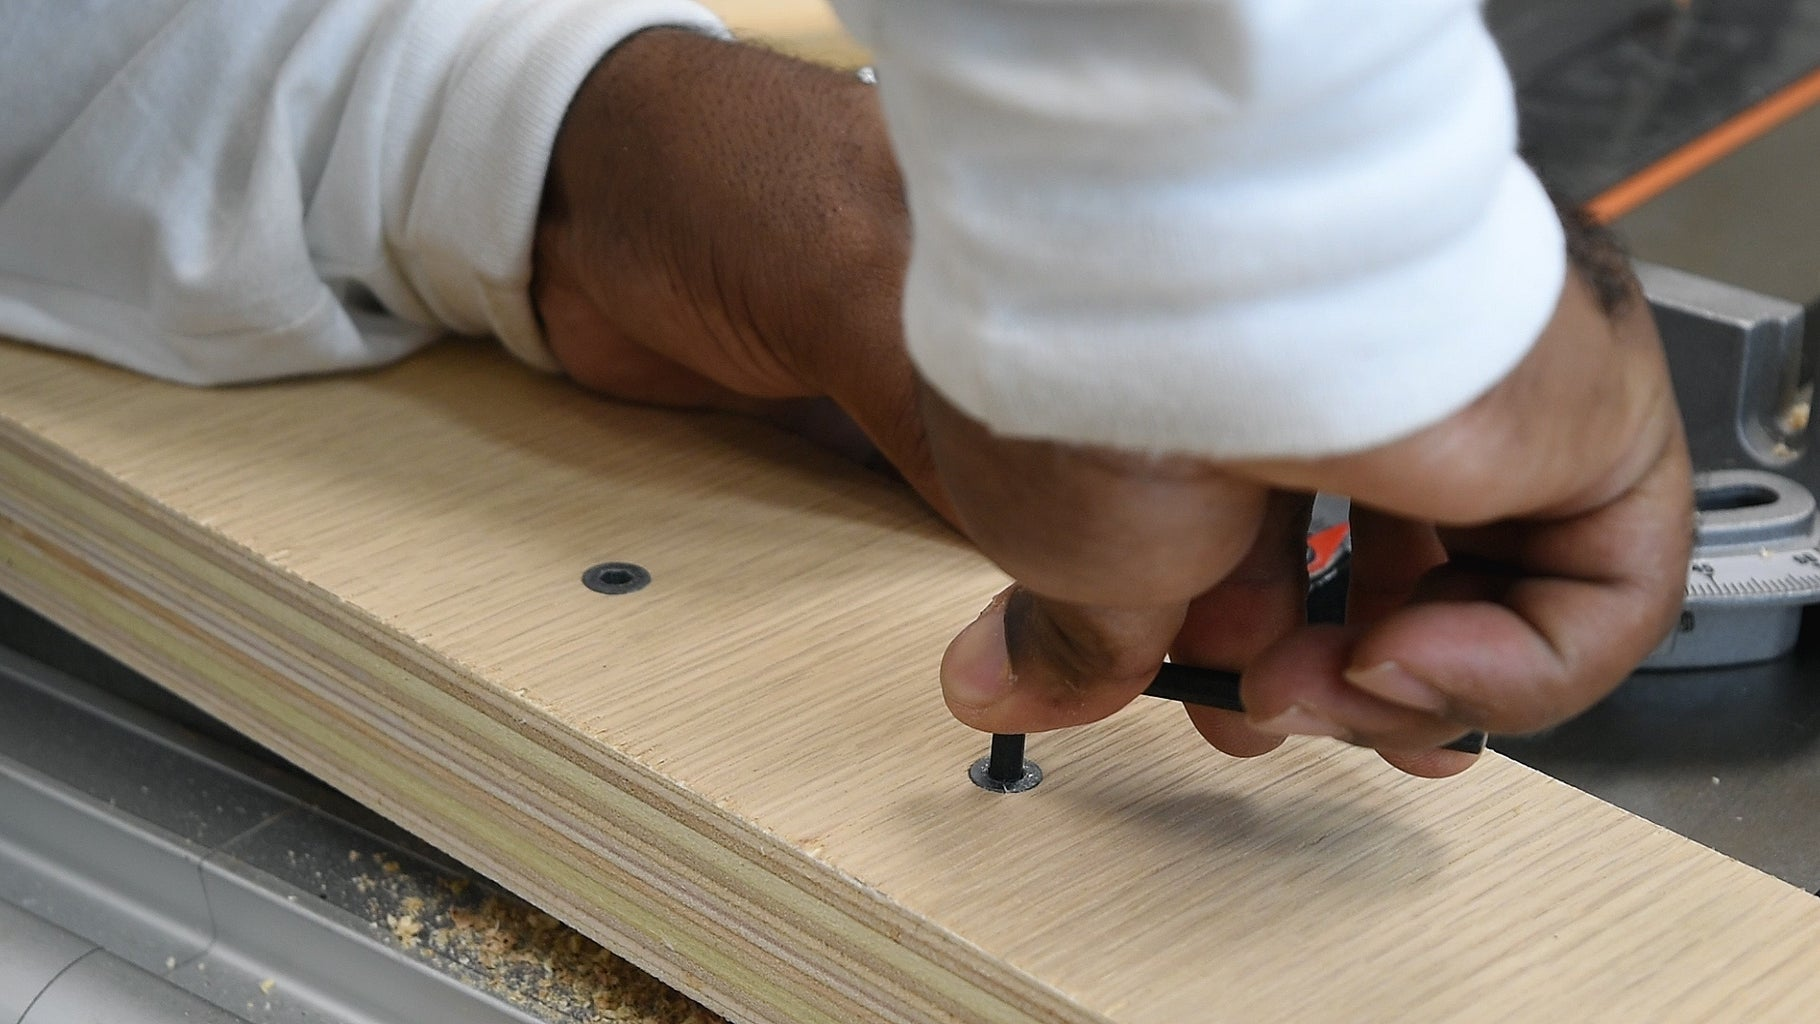 Attaching the Miter Bar